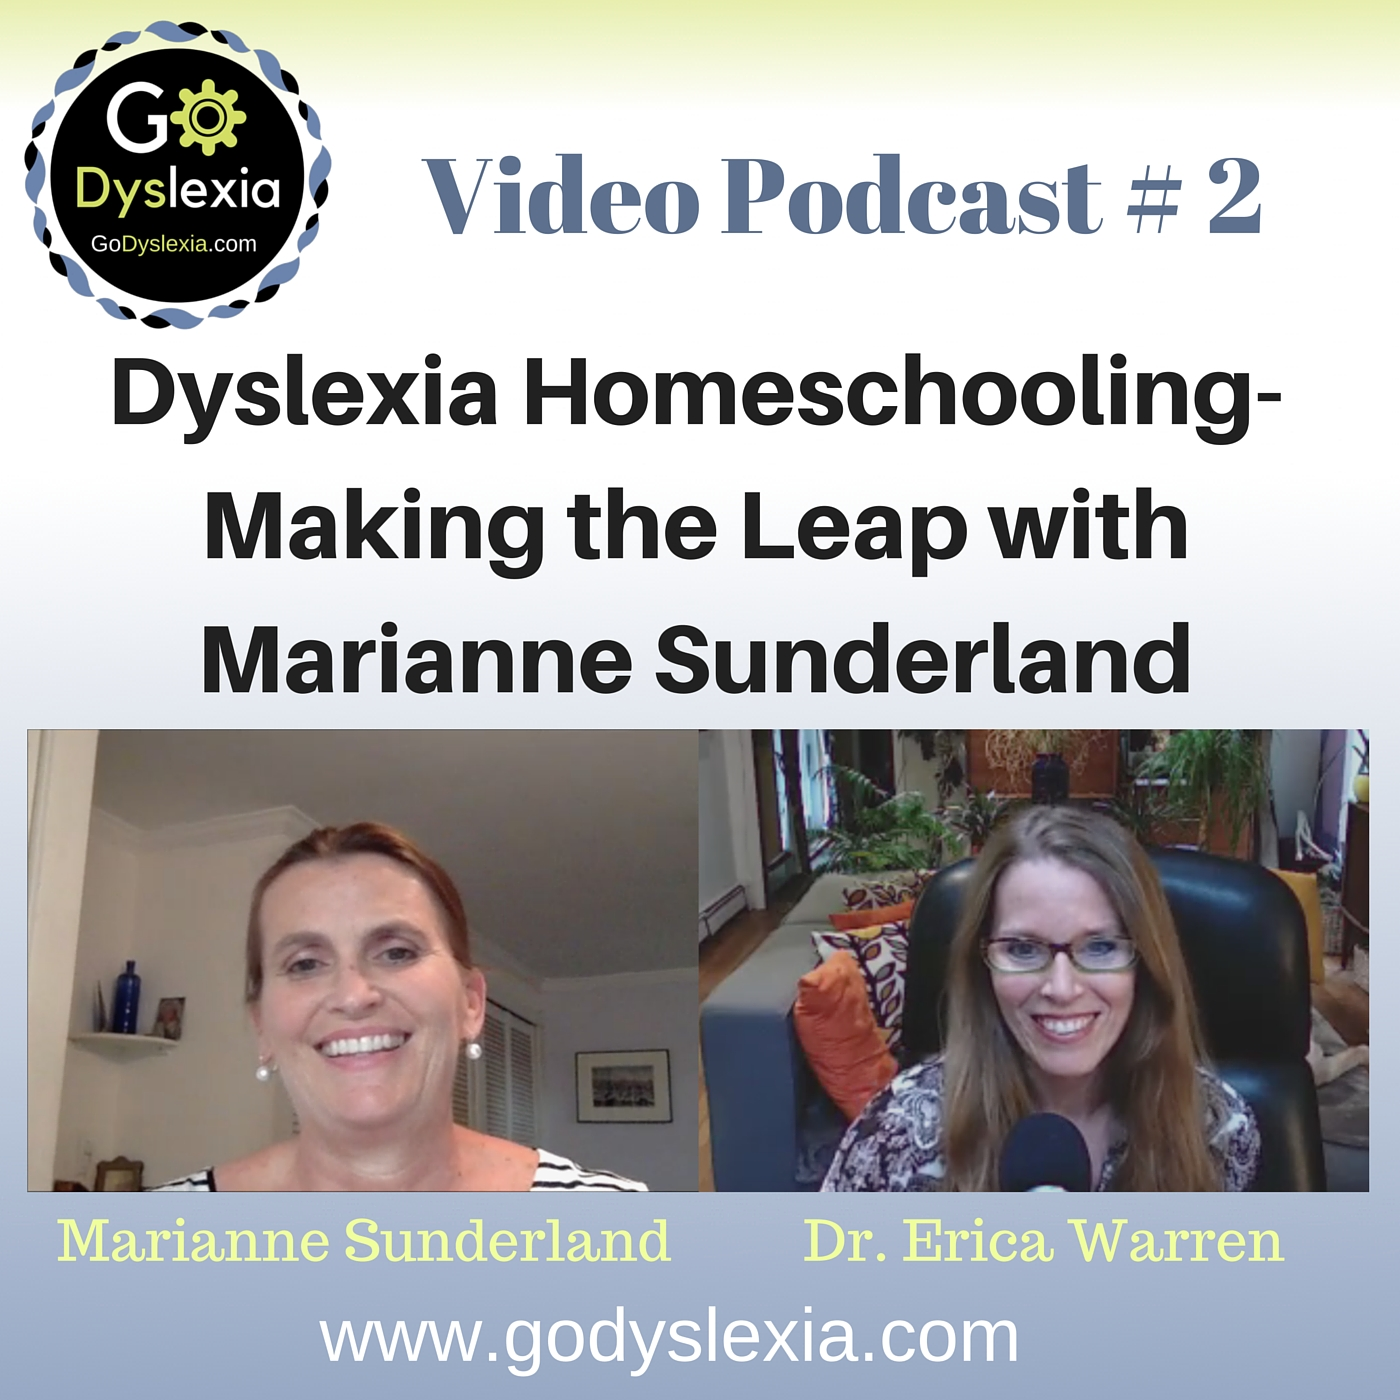 Go Dyslexia Episode 2: Dyslexia Homeschooling - Making the Leap with Marianne Sunderland